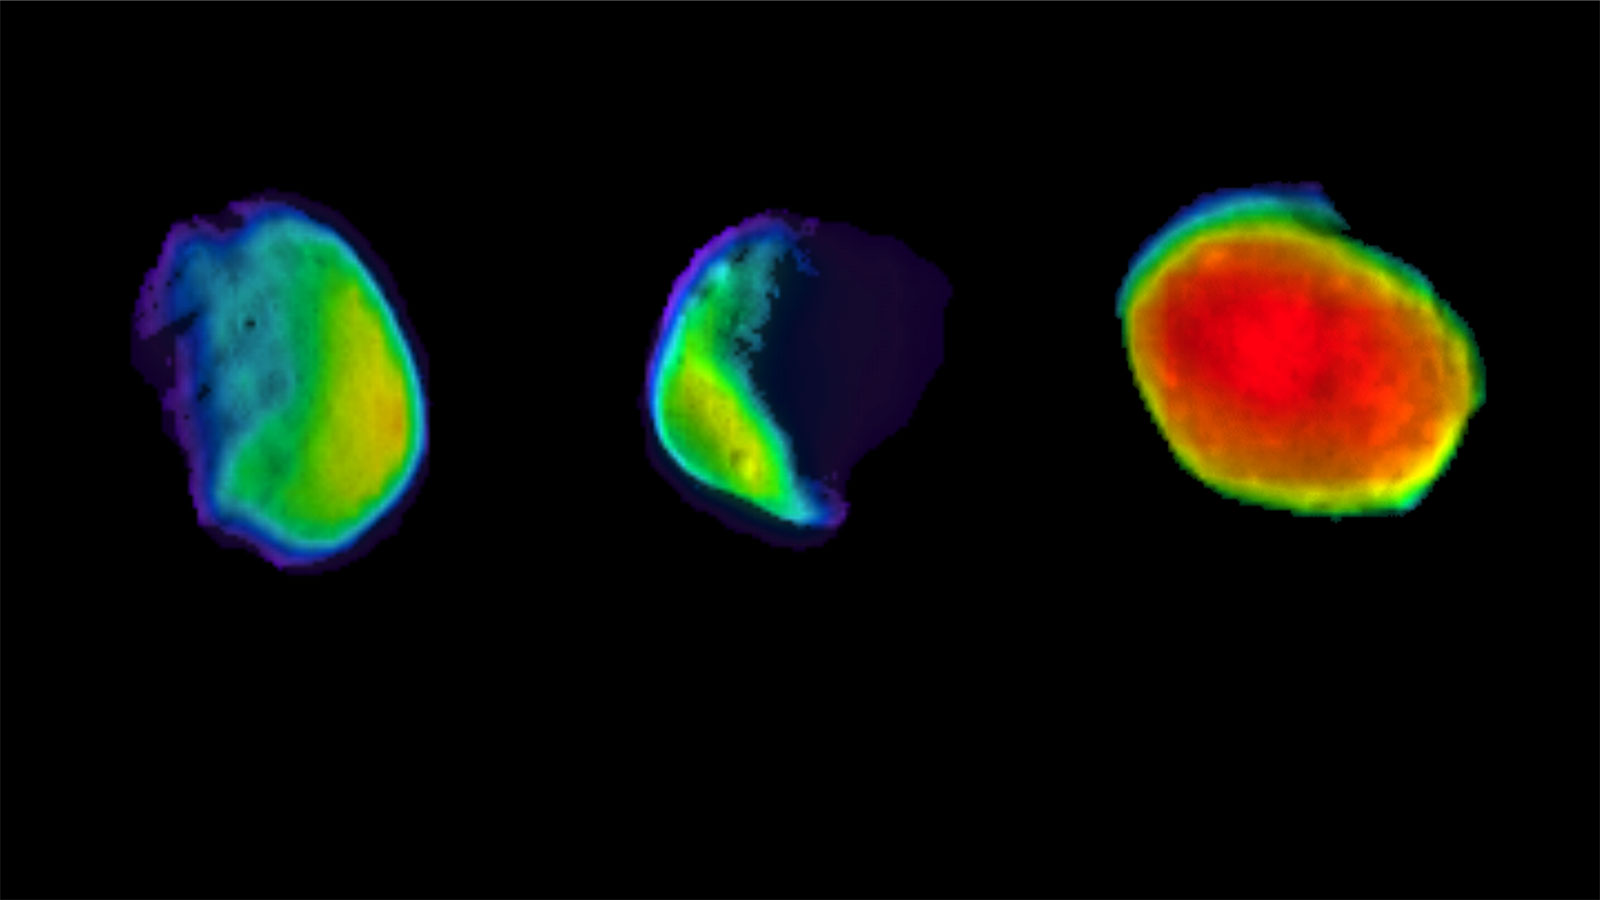 slide 4 - Three different views of the Martian moon Phobos, as seen by NASA's 2001 Mars Odyssey orbiter using its infrared camera.